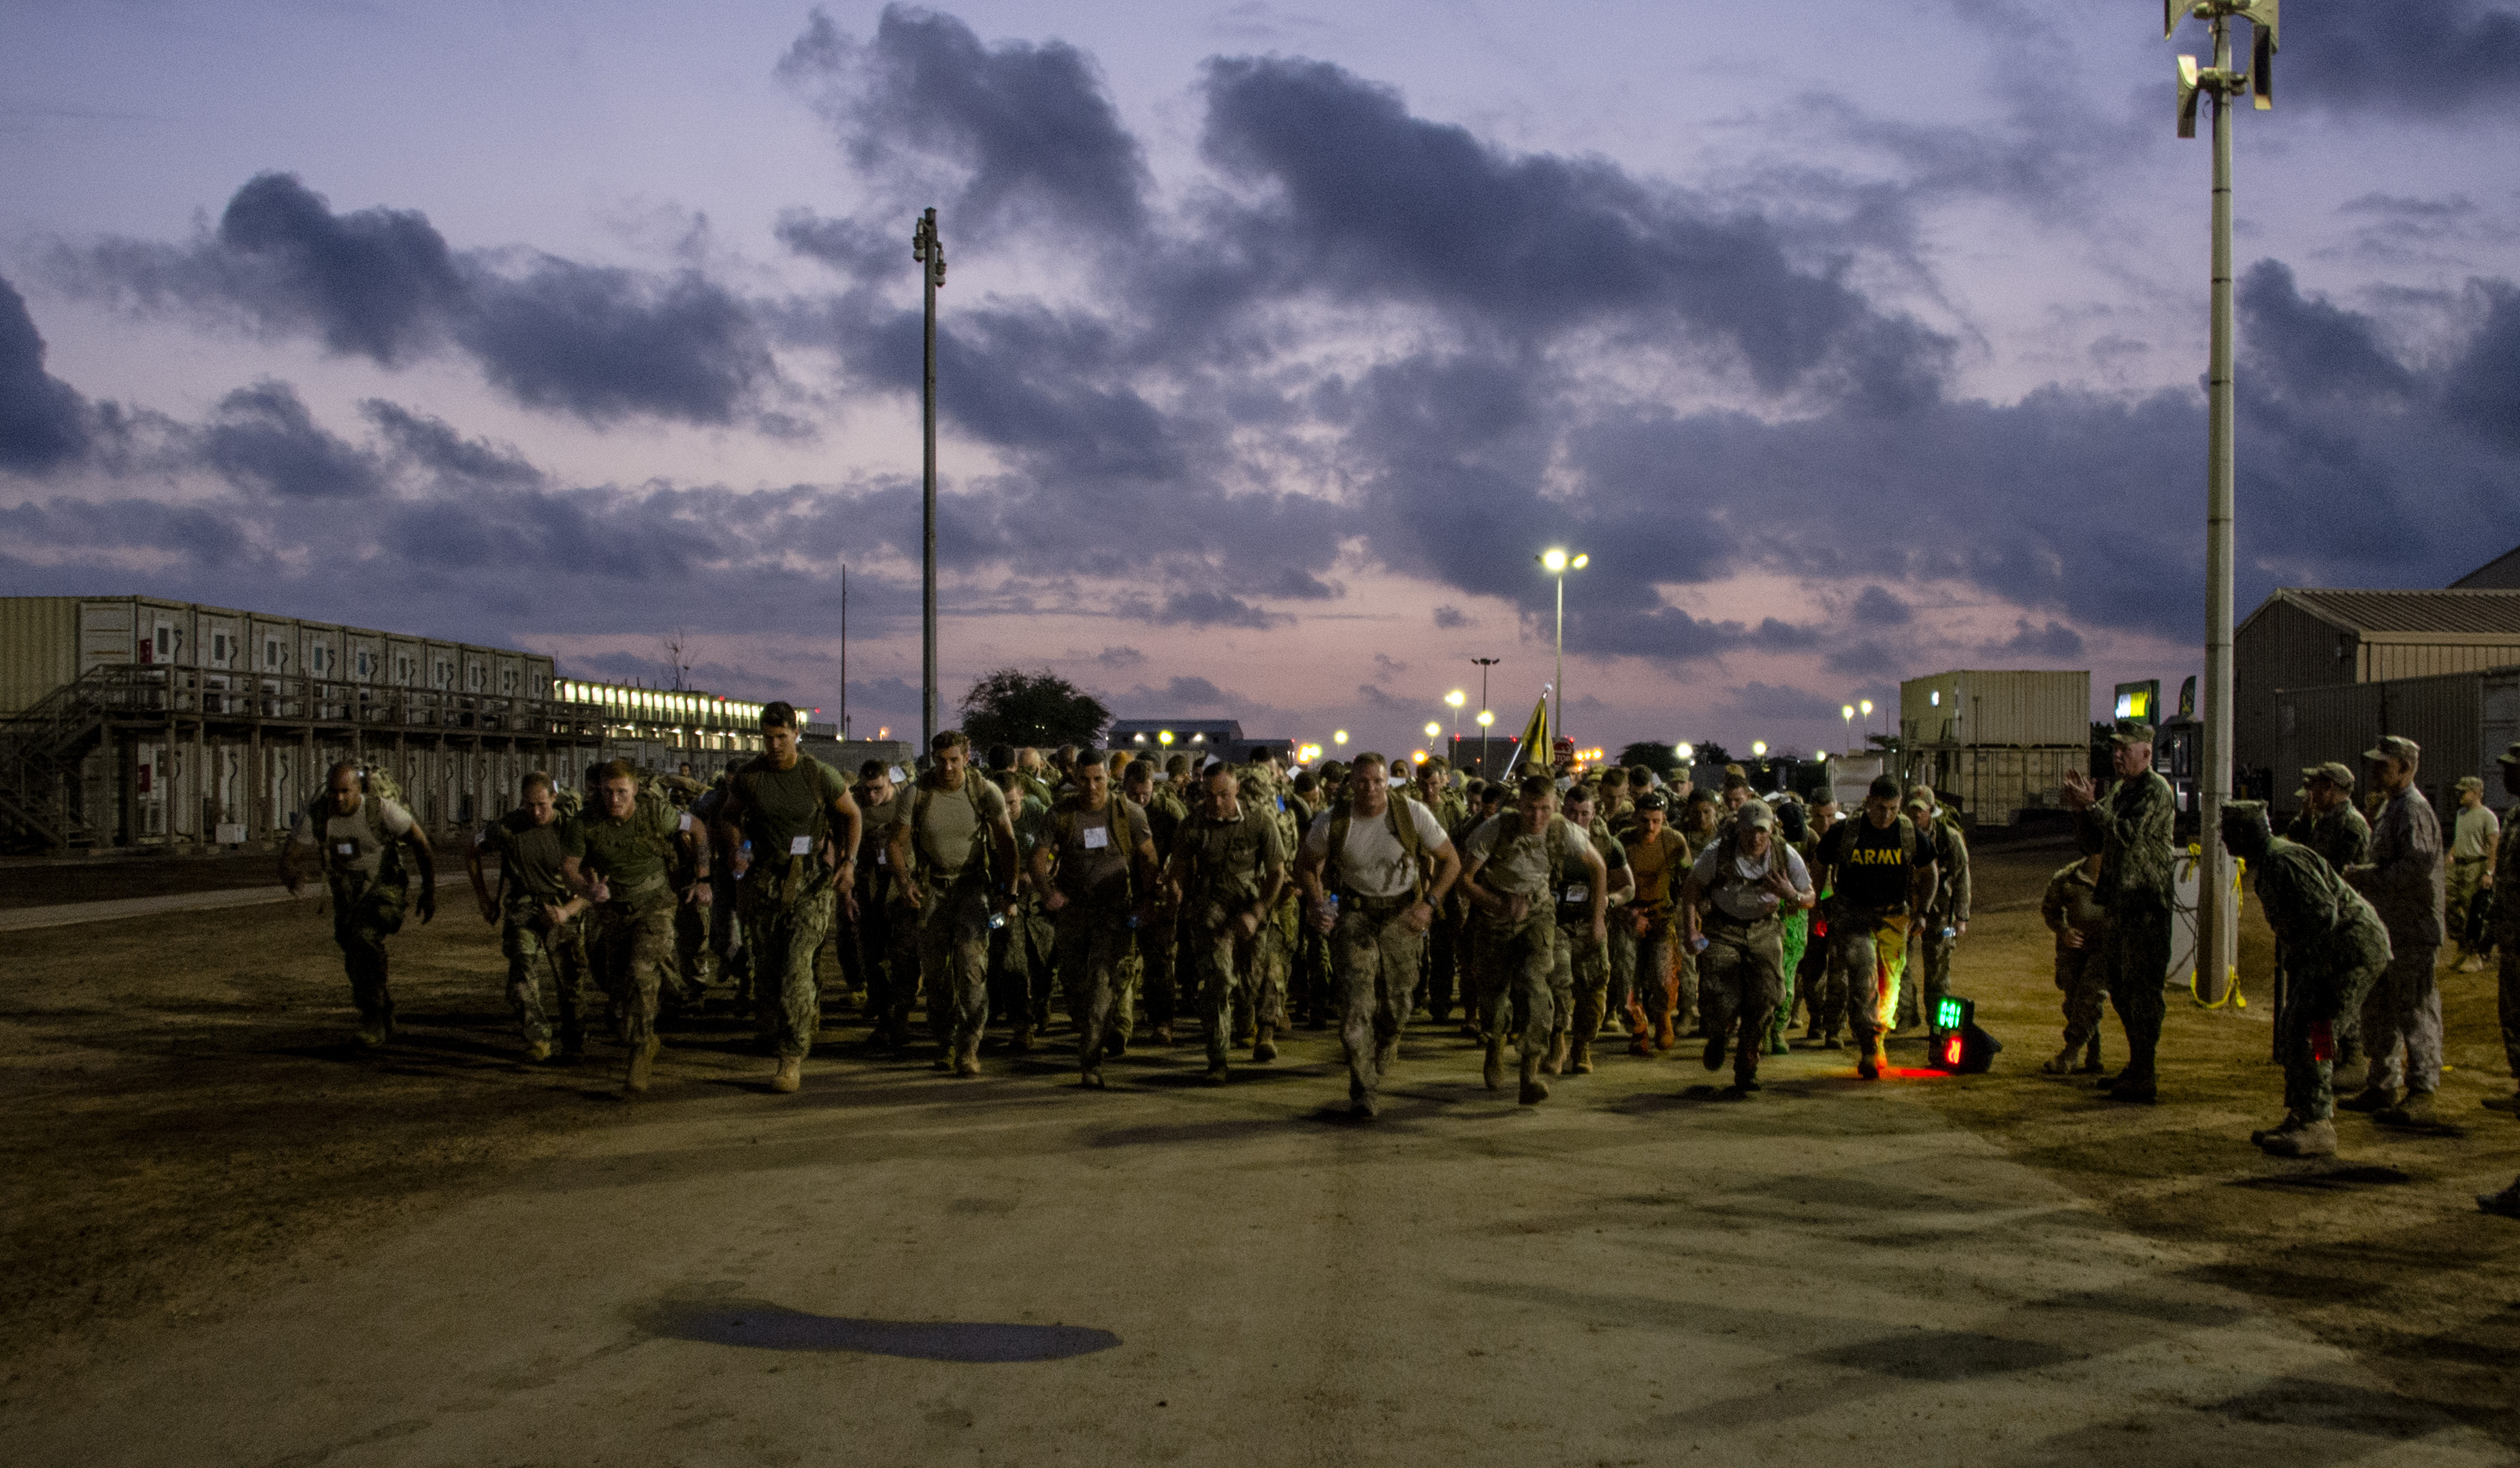 Participants of the Joint Warrior Competition (JWC) start the event before sunrise on Camp Lemonnier, Djibouti, March 25, 2017. Camp Lemonnier and Combined Joint Task Force-Horn of Africa senior enlisted leadership designed the JWC as a way to demonstrate joint service understanding, leadership, physical and mental toughness for its participants. (U.S. Air National Guard photo by Staff Sgt. Christian Jadot)